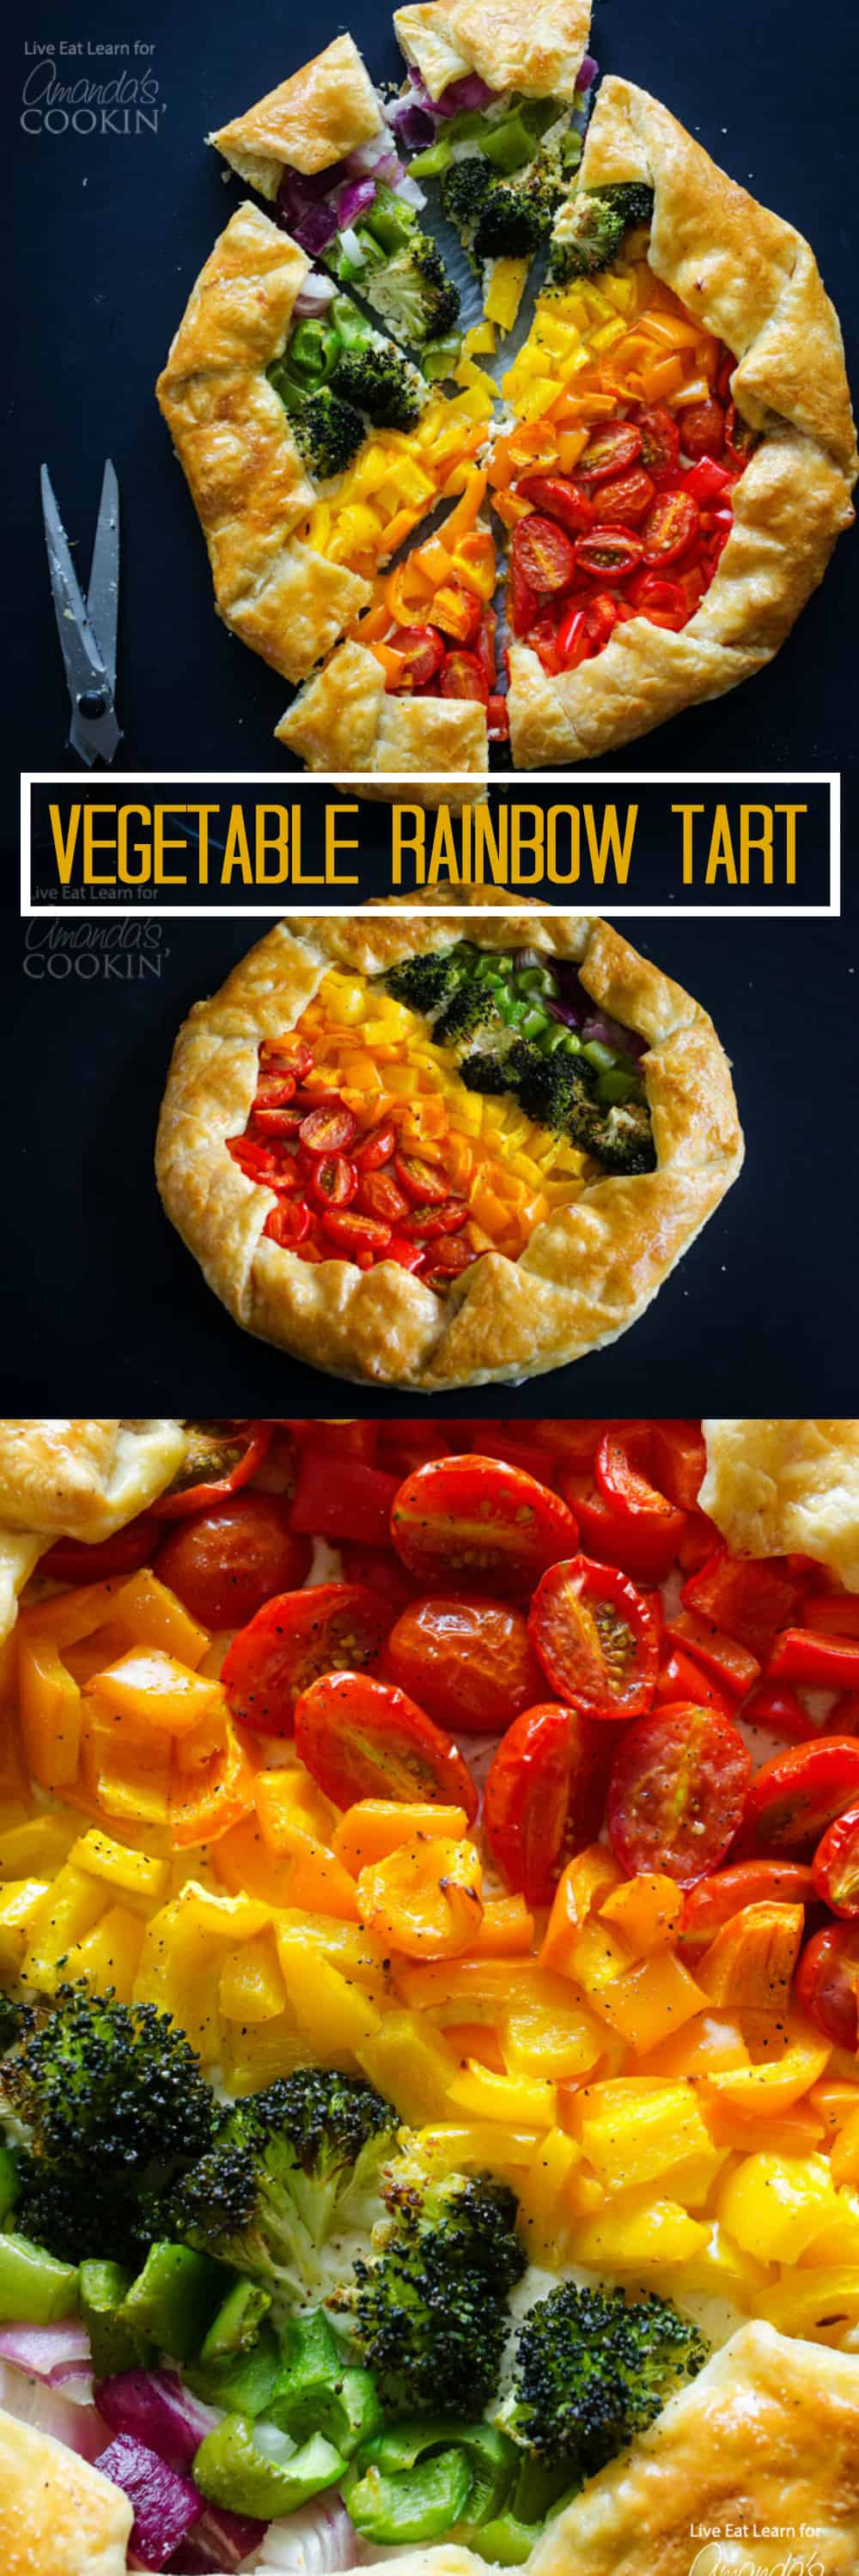 Vegetable Rainbow Tart: Give your veggie side dish a colorful boost. With puff pastry and a ricotta cheese base, this is as tasty as it is colorful.